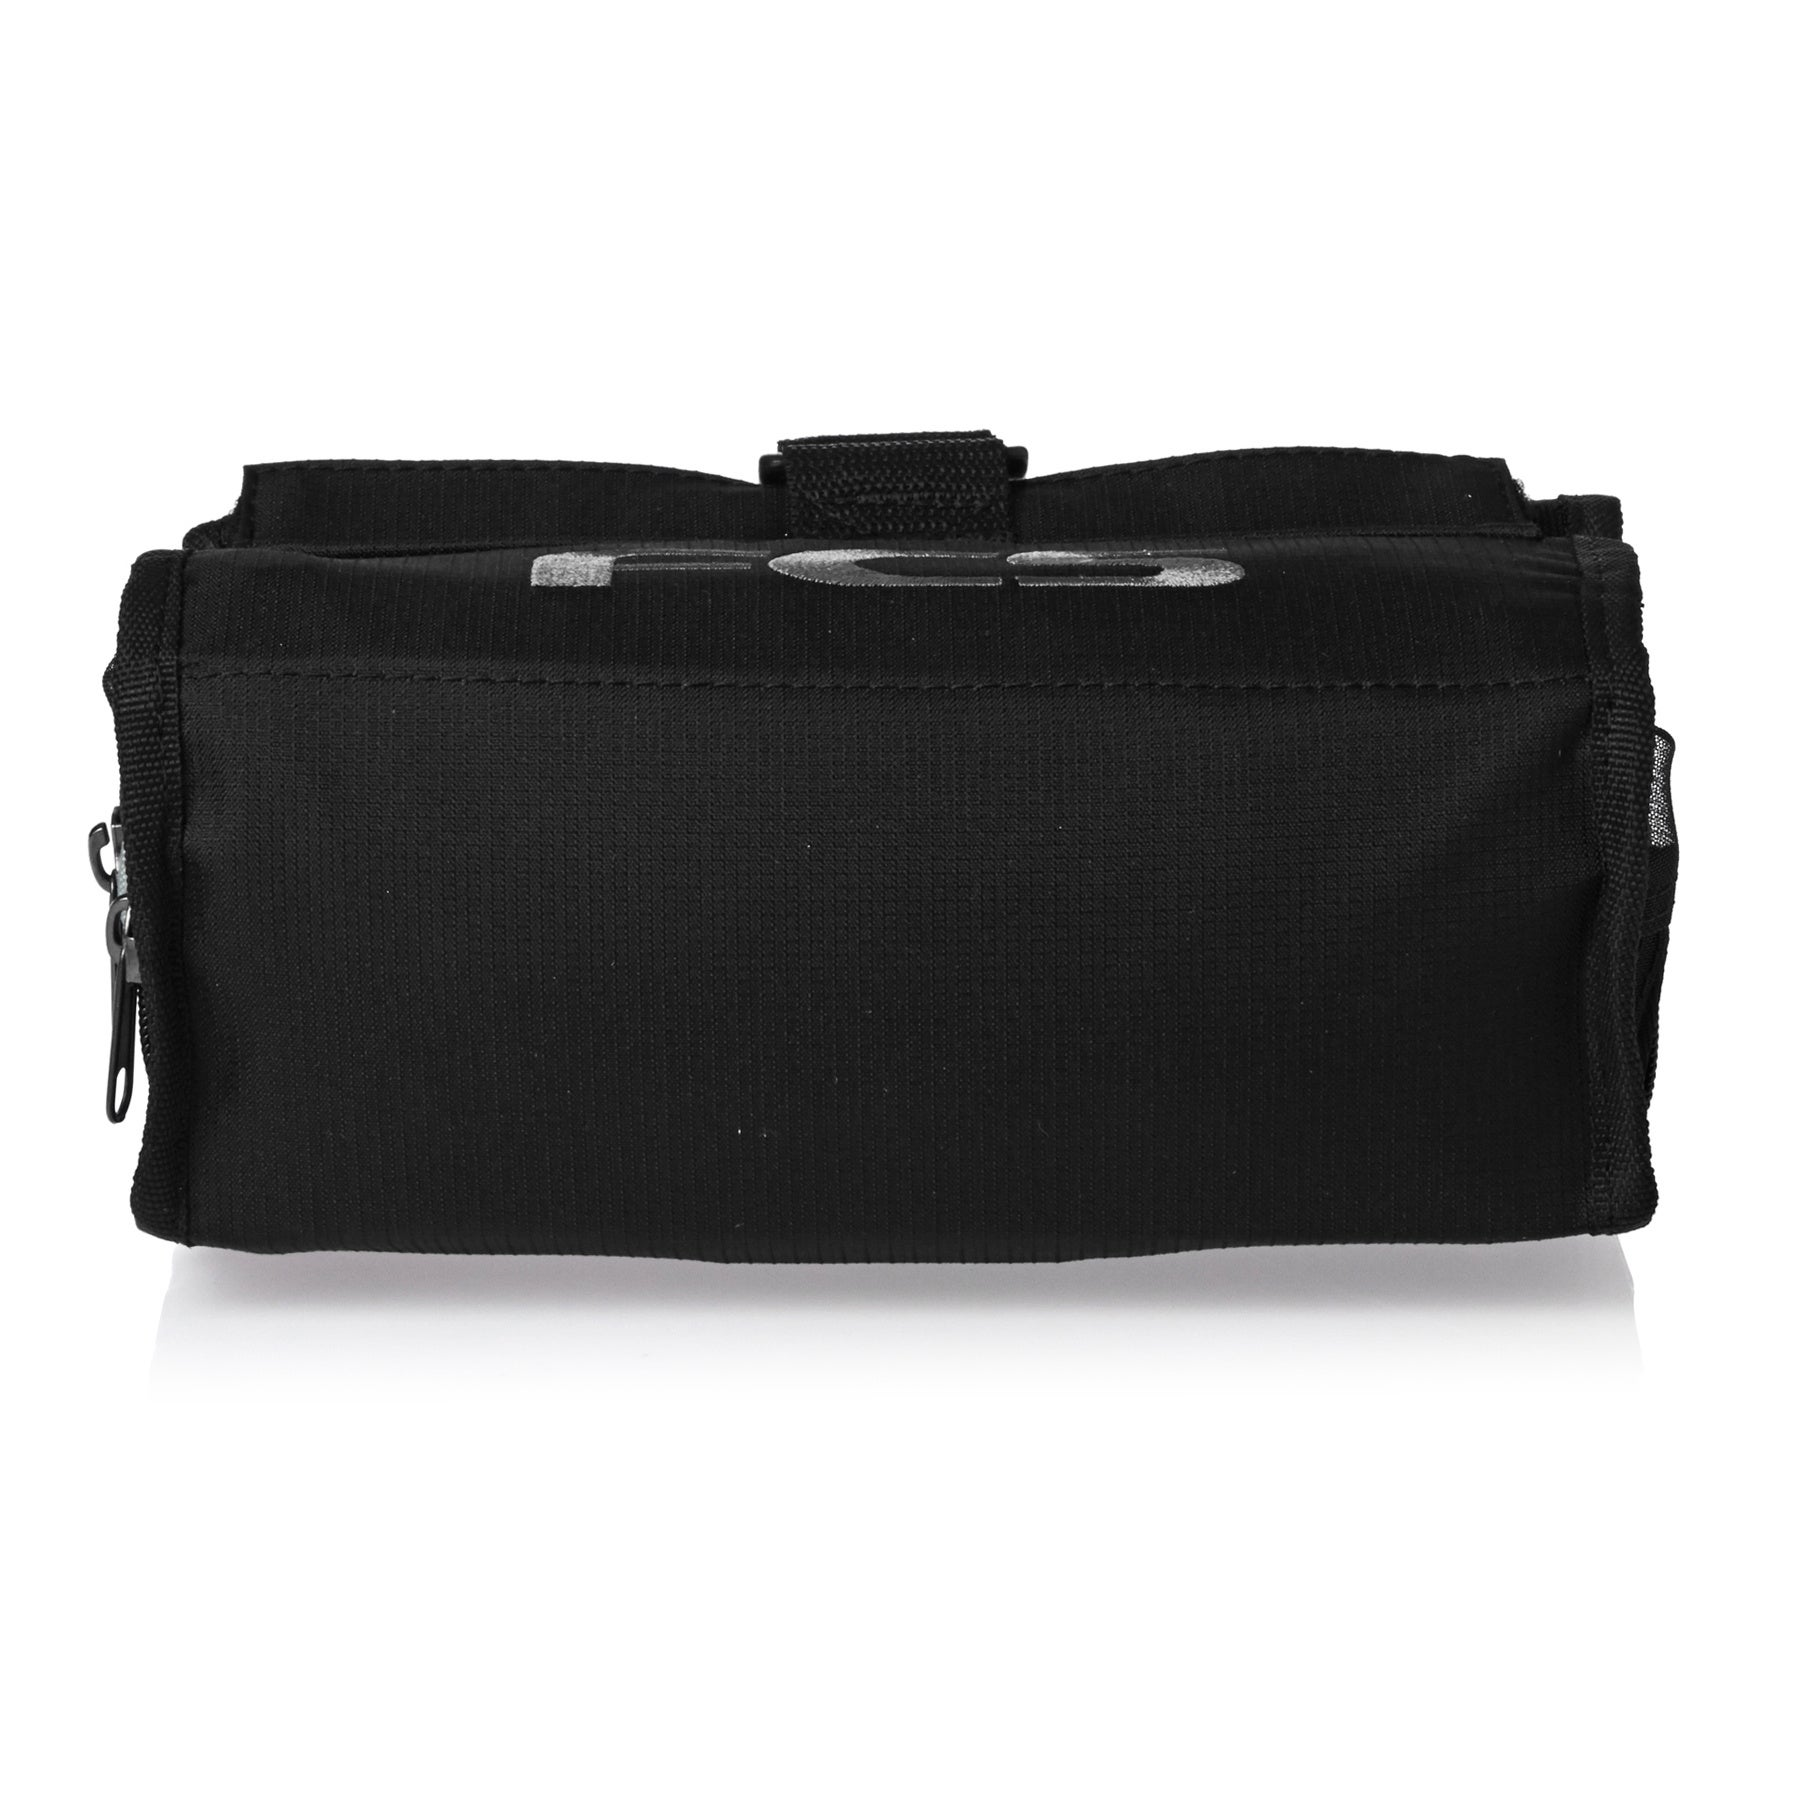 FCS Accessory Pack Wash Bag - Black